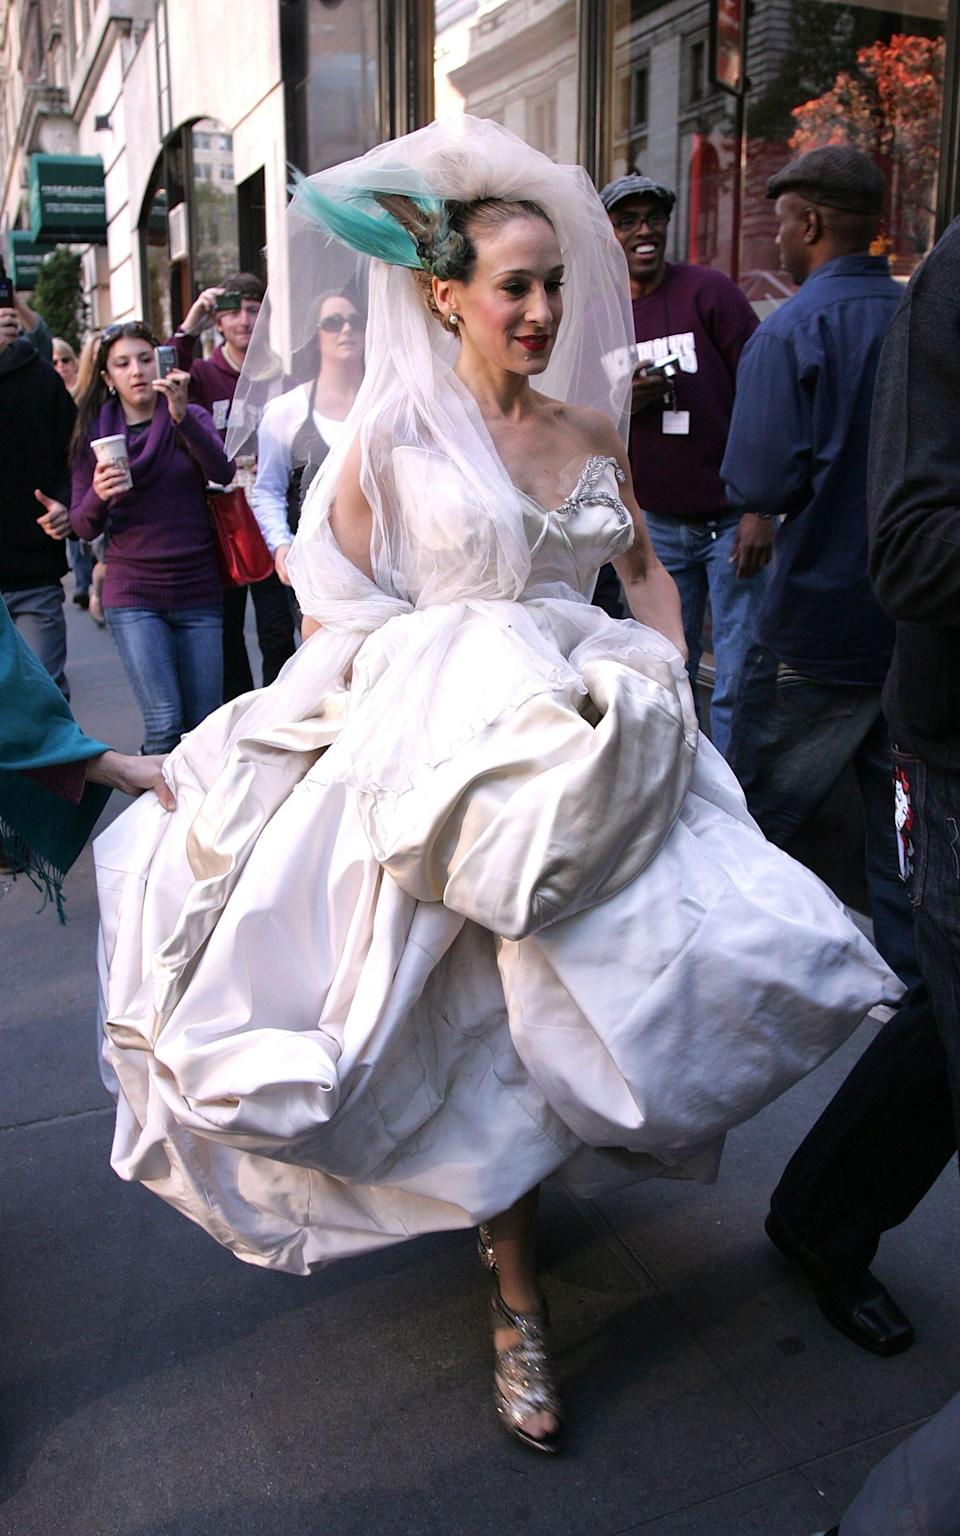 Carrie Bradshaw in her Vivienne Westwood wedding dress - Getty Images